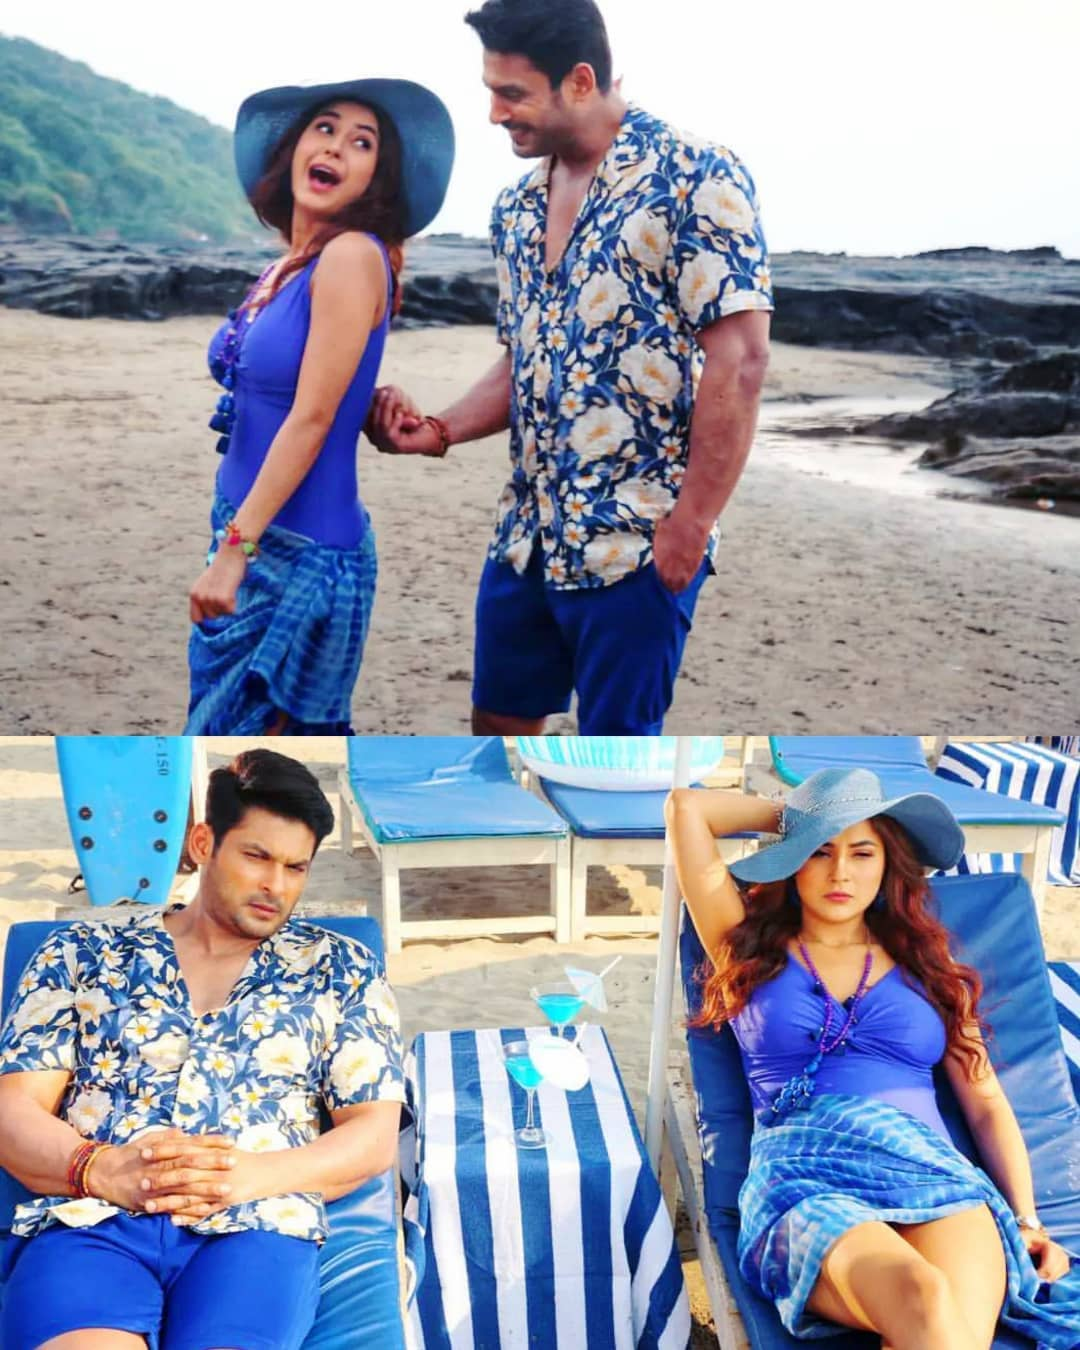 Gossips: Sidharth Shukla-Shehnaaz Gill's pictures from unreleased music video go VIRAL